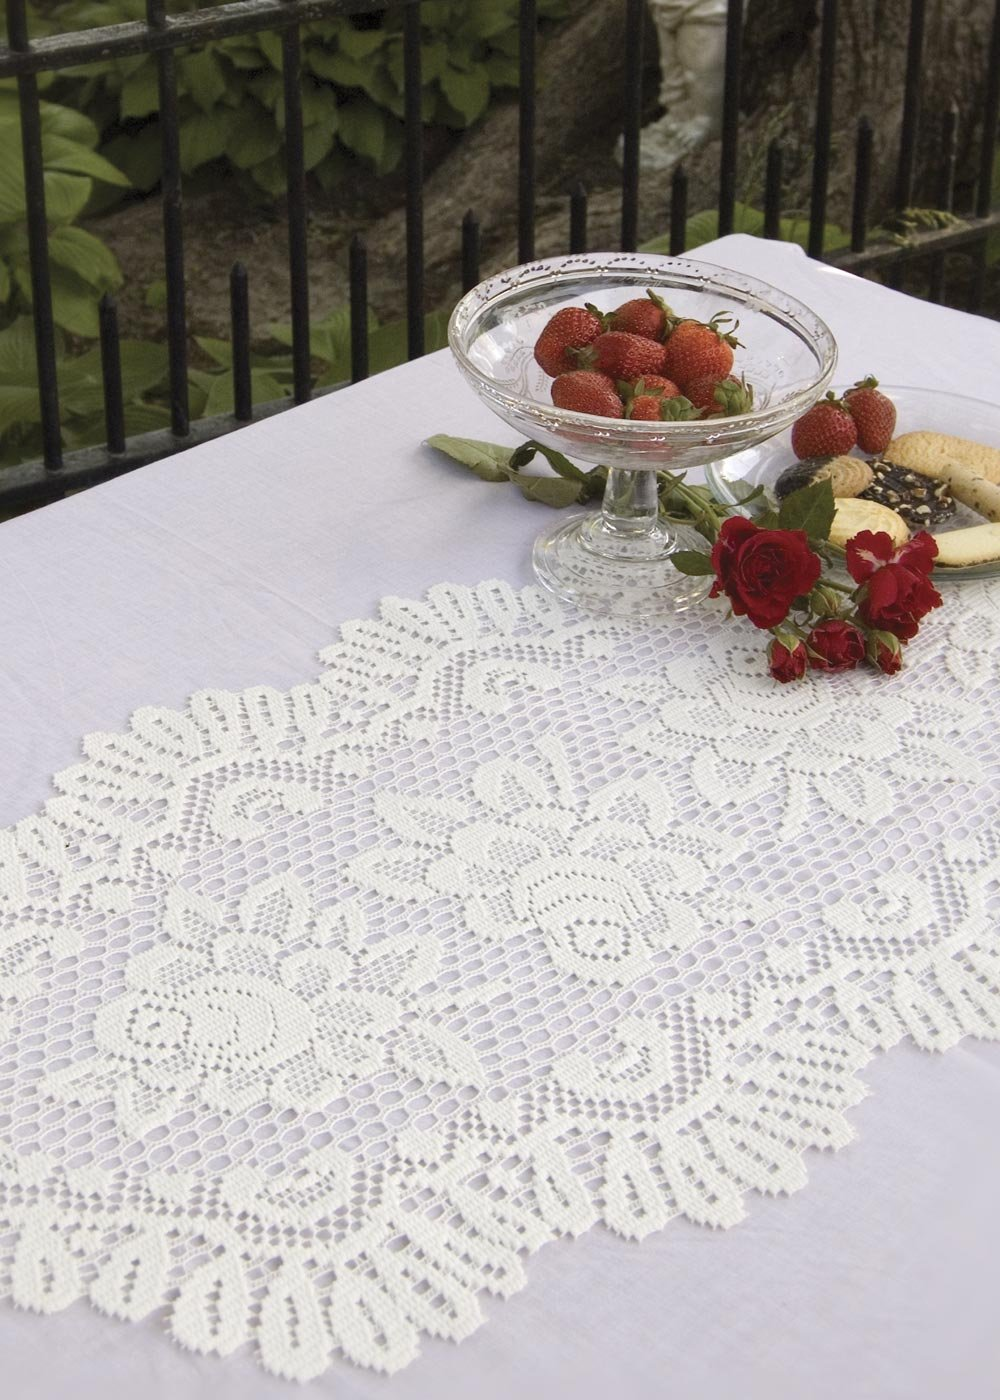 Heritage Lace ROSE TABLE RUNNER 17 X 72